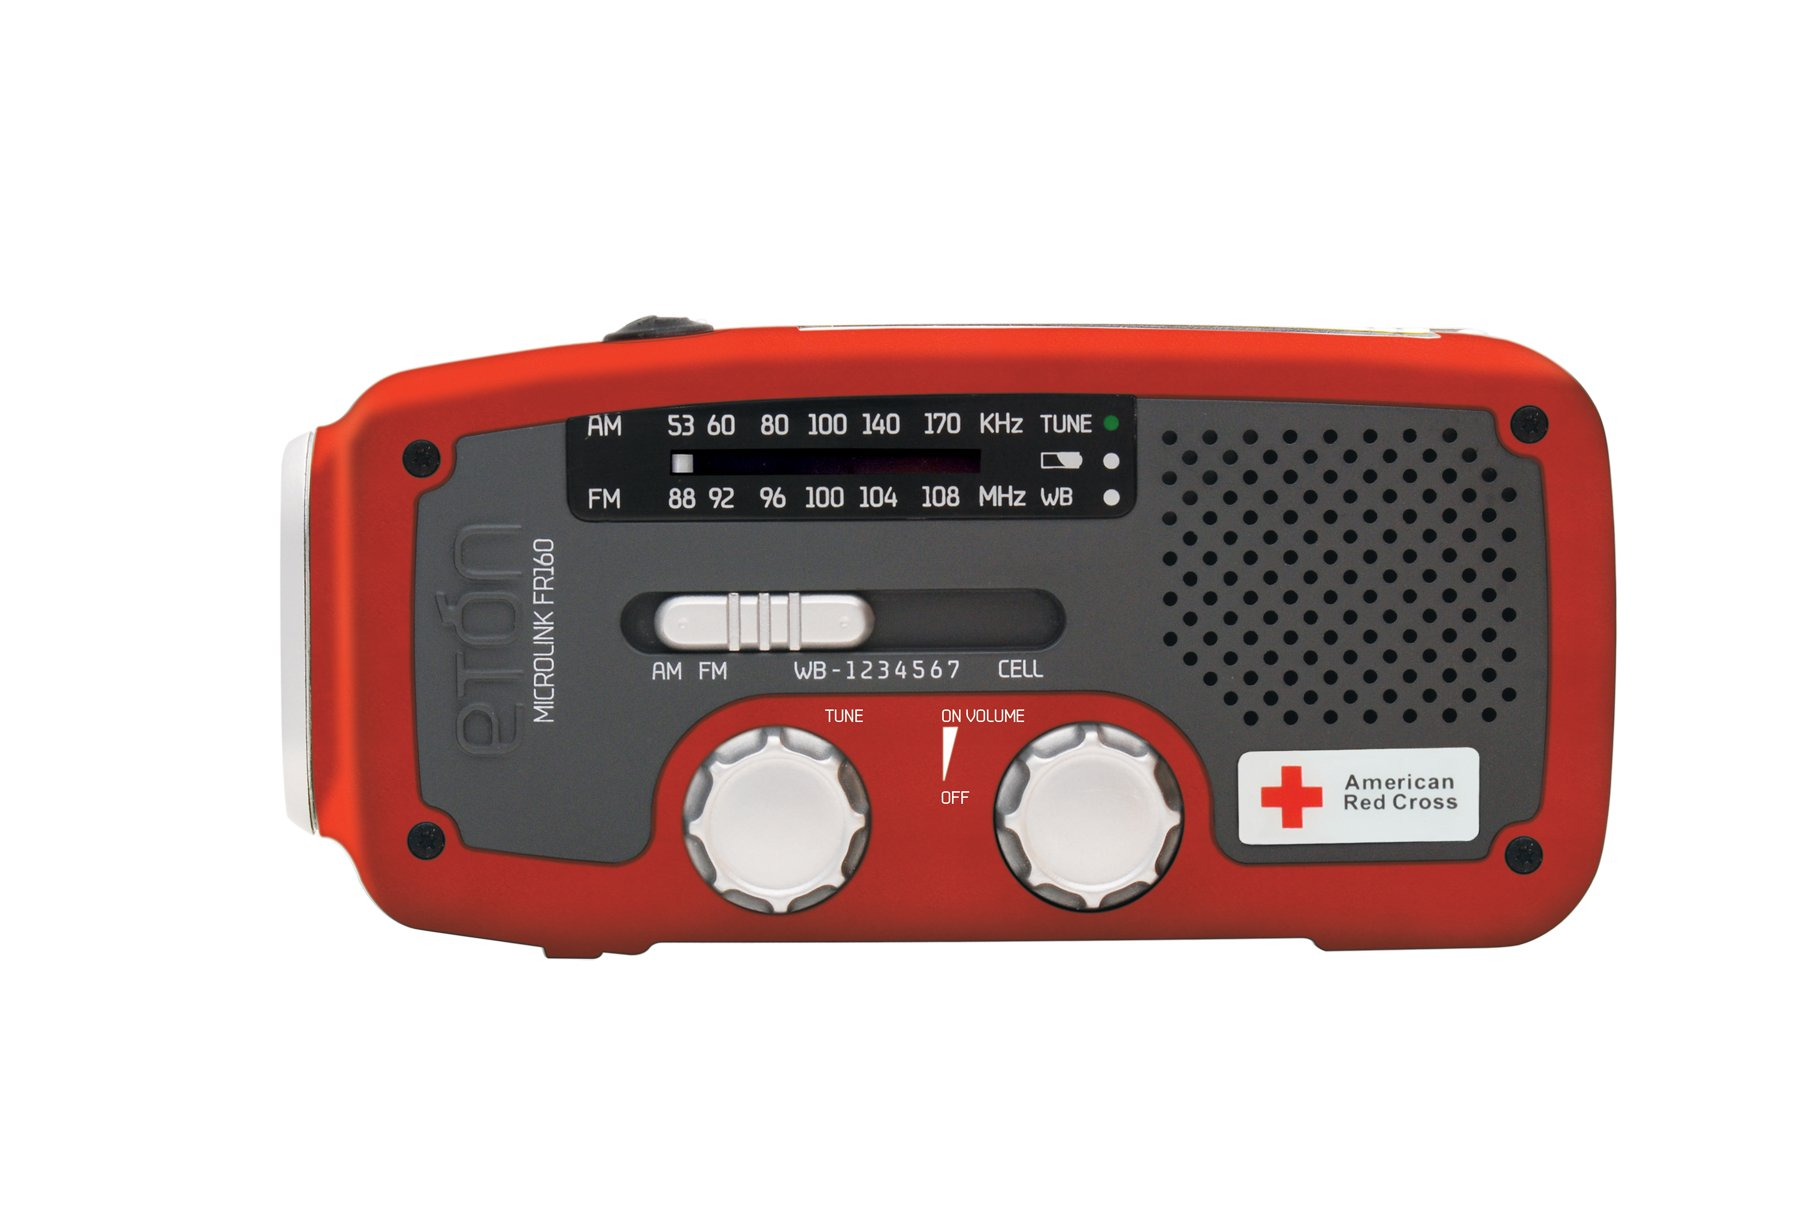 Etón American Red Cross FR160 Microlink Self-Powered AM/FM/NOAA Weather Radio with Flashlight, Solar Power and Cell Phone Charger (Red), ARCFR160WXR by Eton